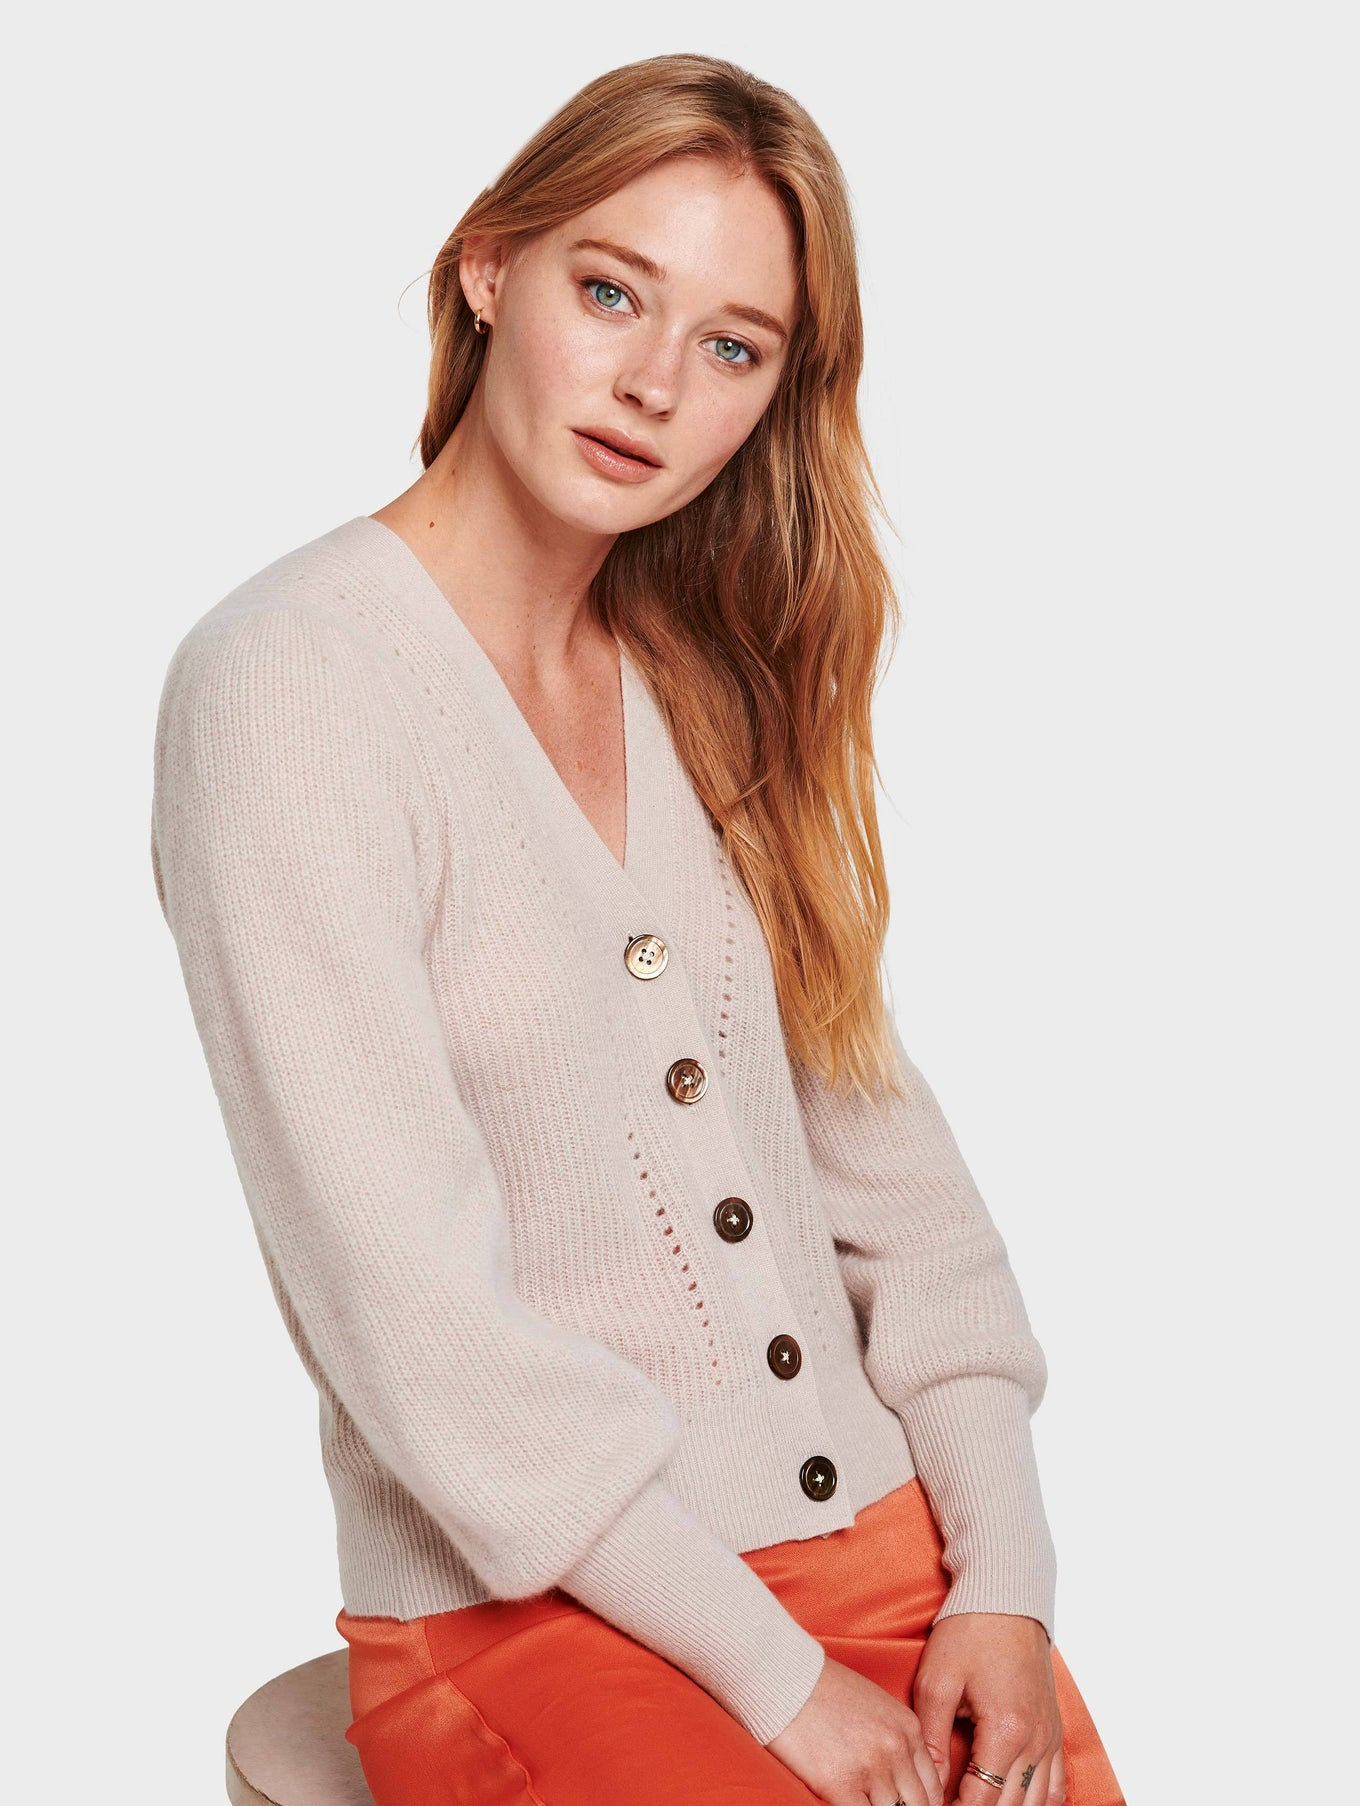 Cashmere Exaggerated Puff Sleeve Cardigan - Sandstone Heather - Image 1